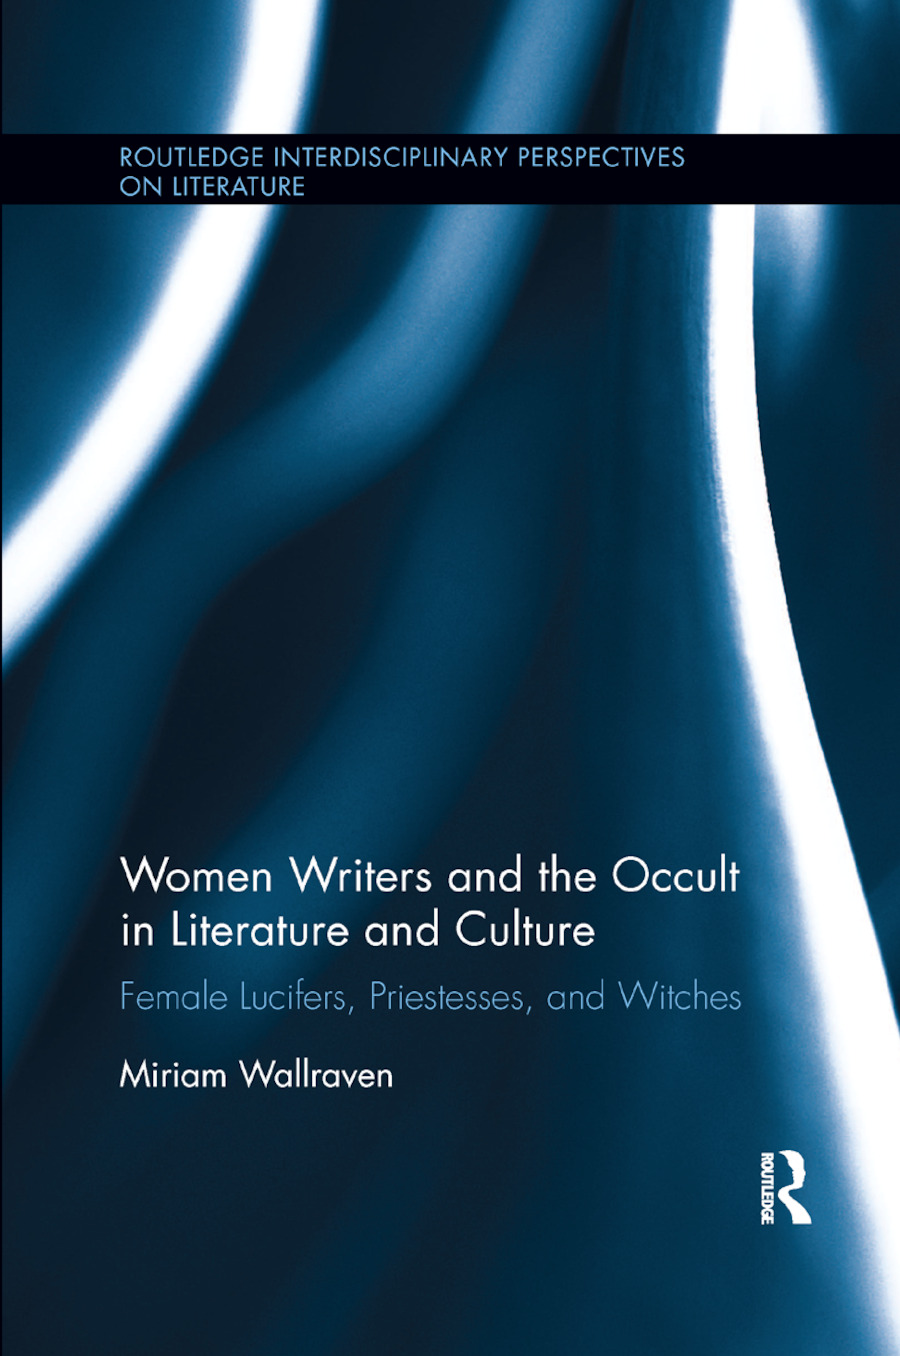 Women Writers and the Occult in Literature and Culture: Female Lucifers, Priestesses, and Witches book cover